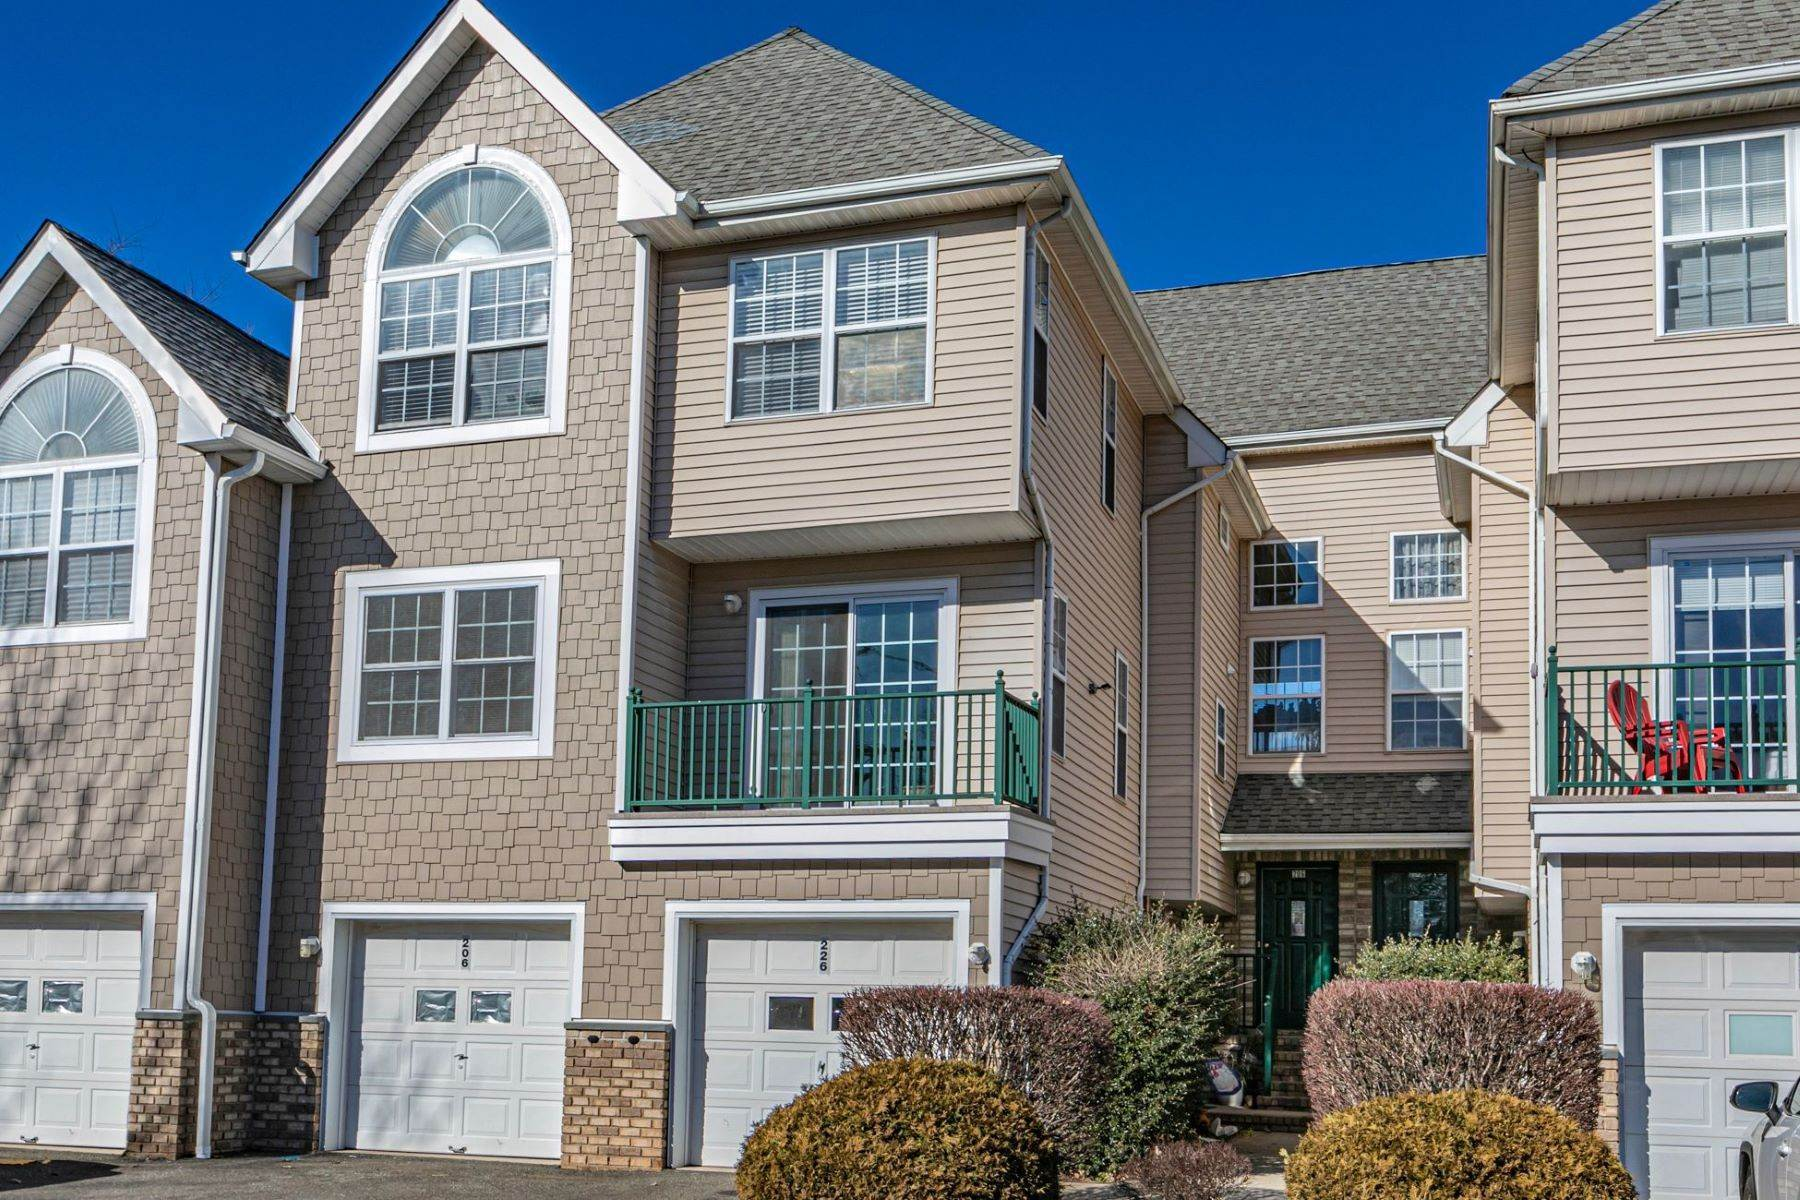 Condominiums for Sale at A Terrific Find In Pike Run 206 Tomahawk Court, Belle Mead, New Jersey 08502 United States